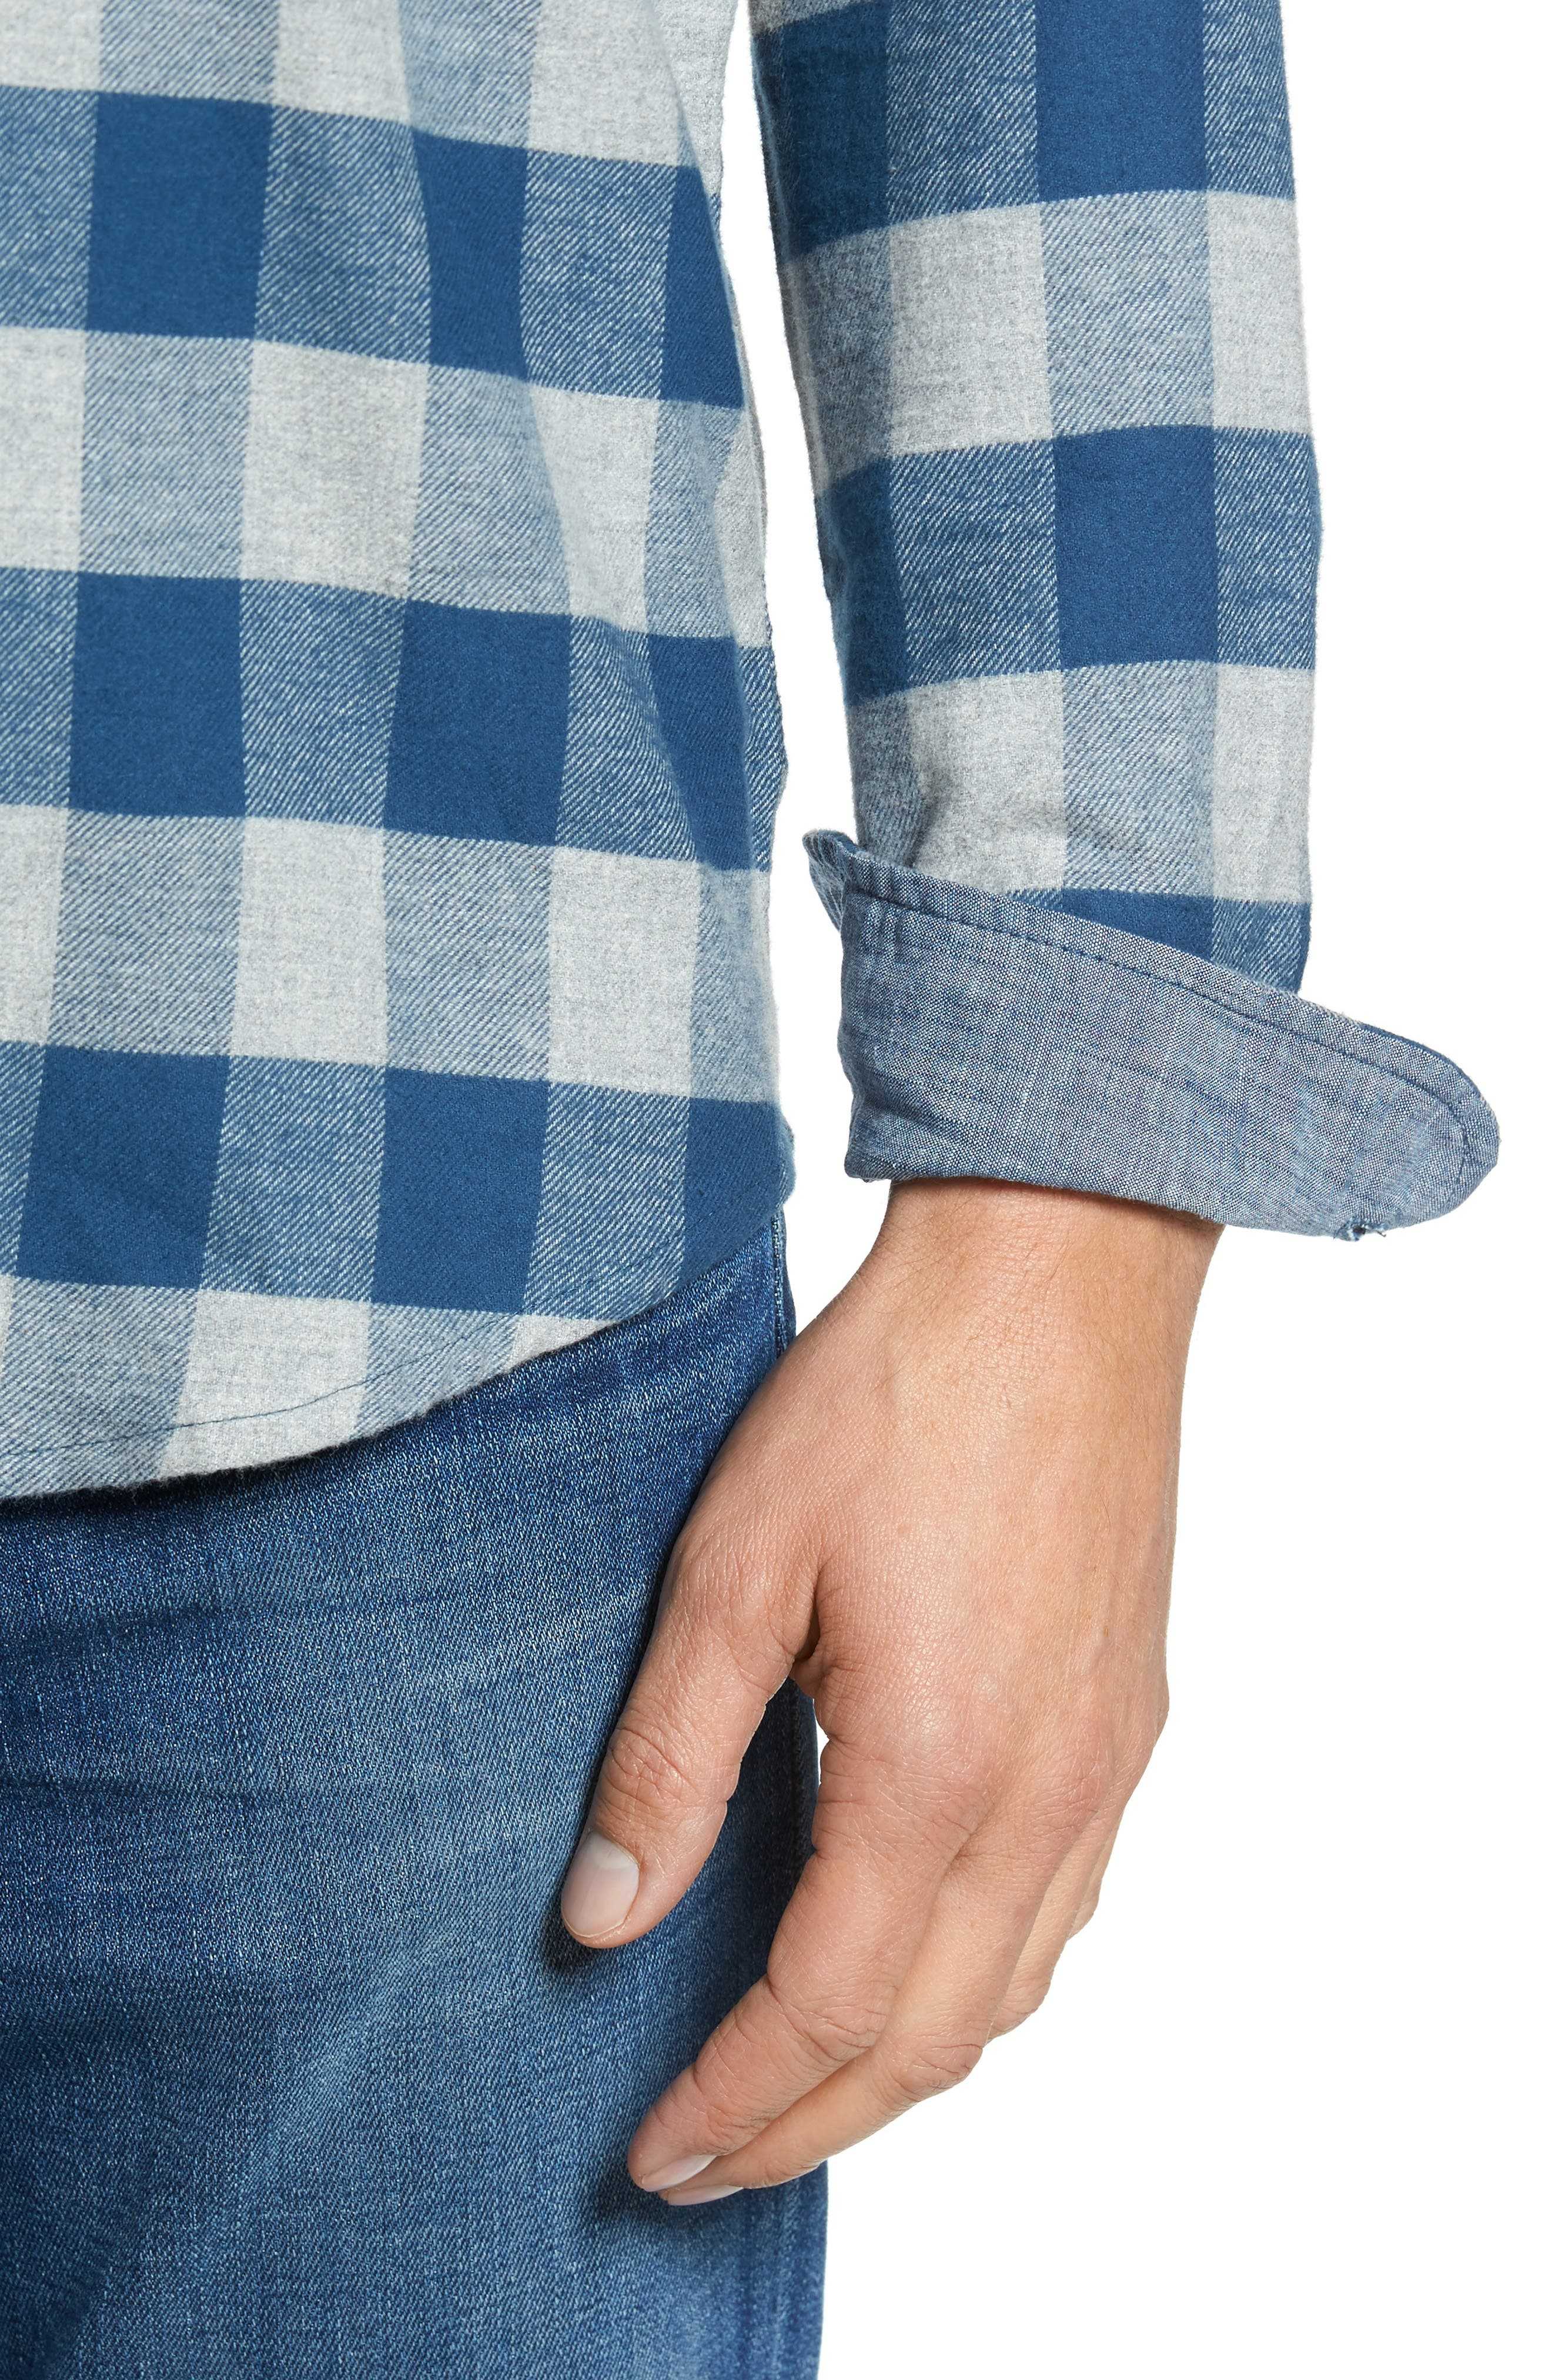 Buffalo Check Flannel Shirt,                             Alternate thumbnail 4, color,                             Teal/ Med Grey Heather